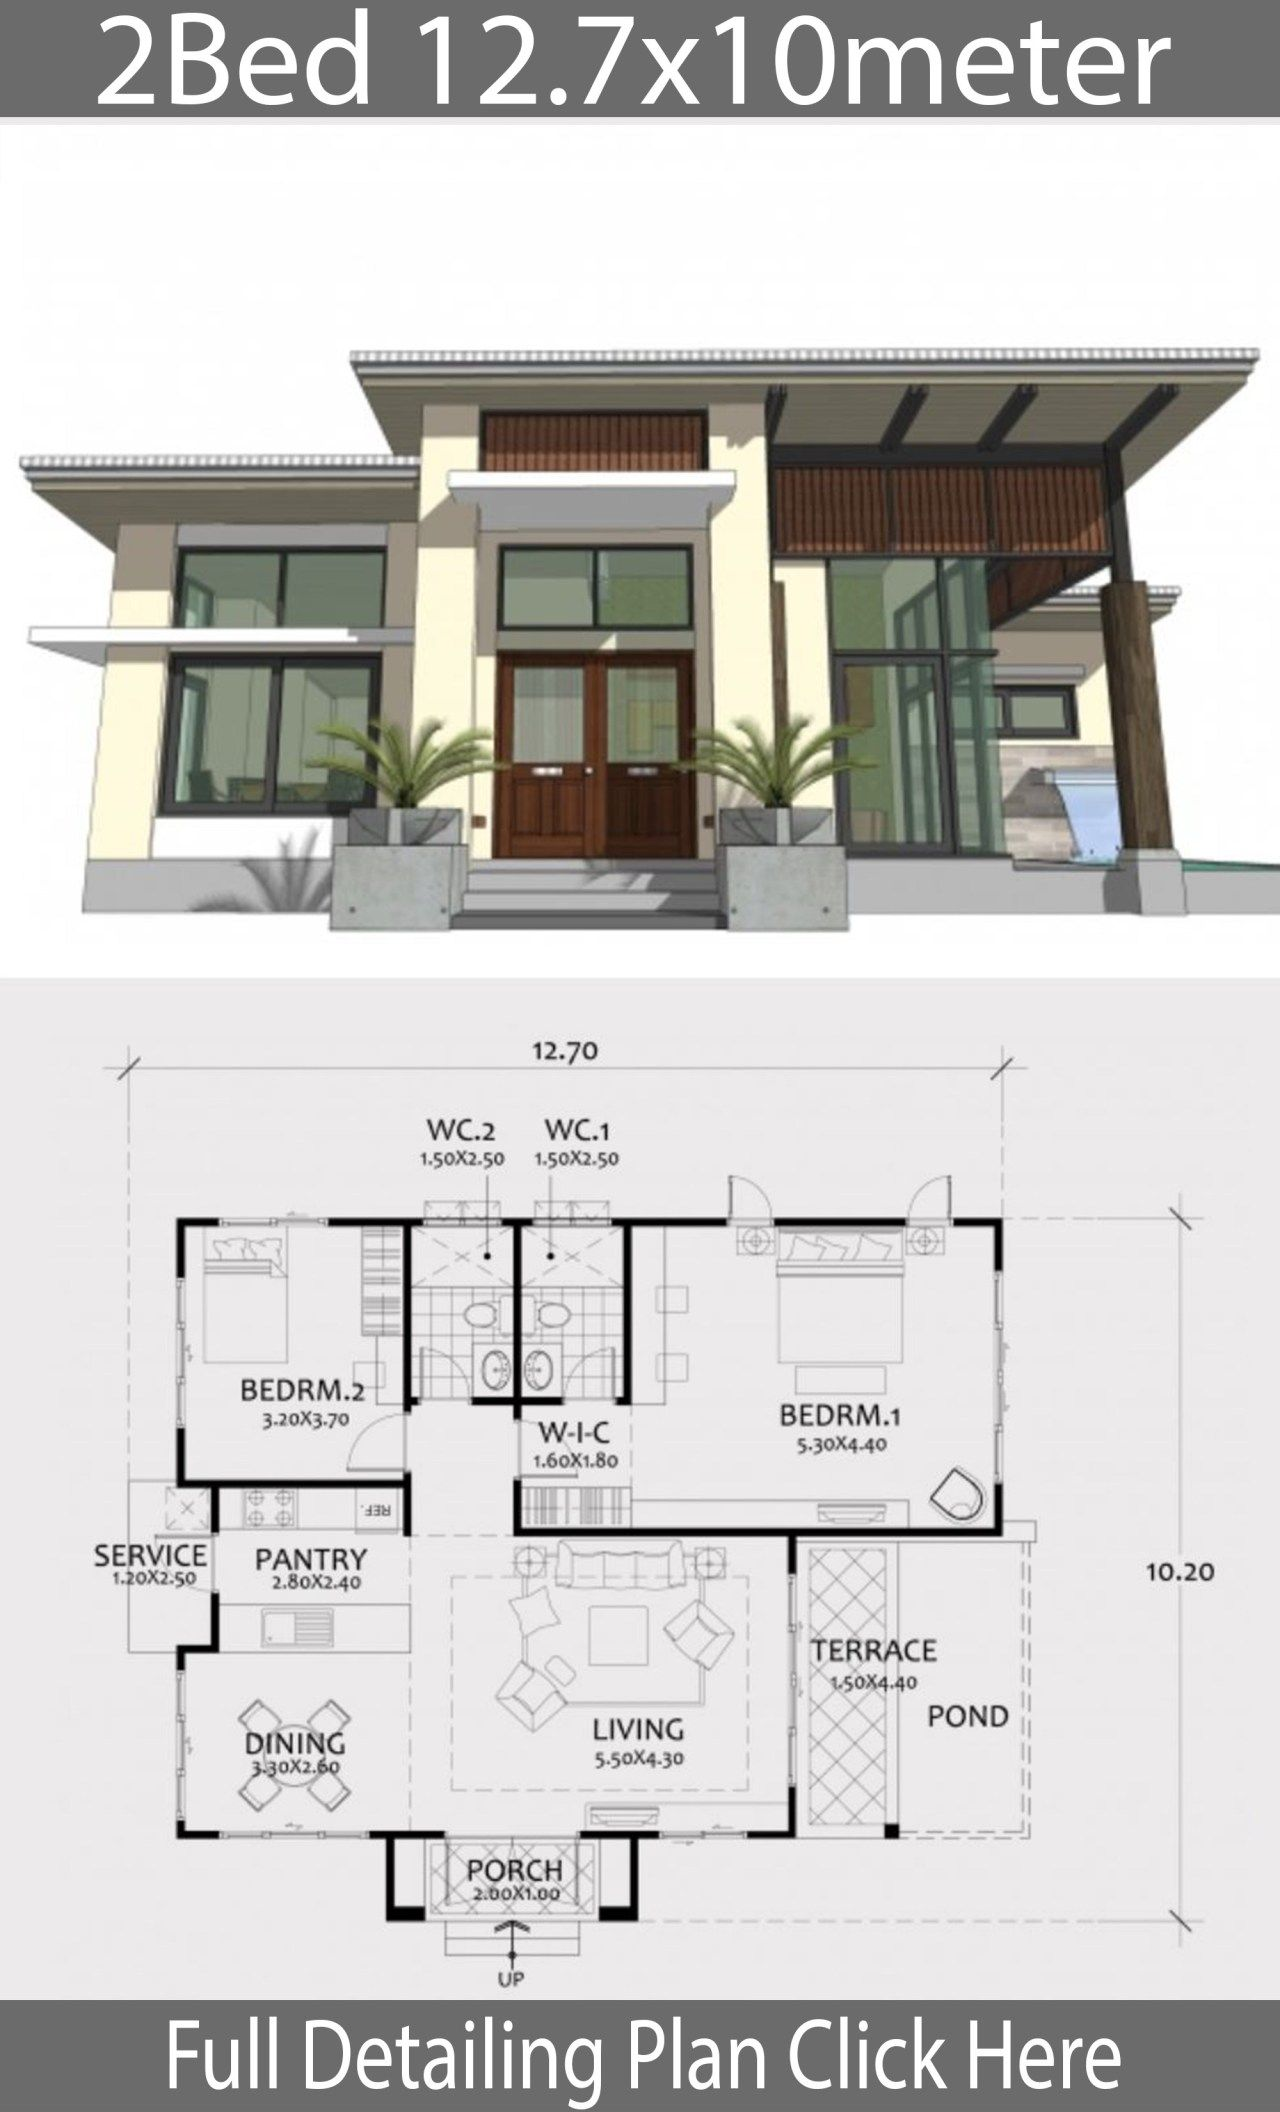 Home Design Plan 12 7x10m With 2 Bedrooms Home Ideas Small House Design Home Design Plan Bungalow House Design